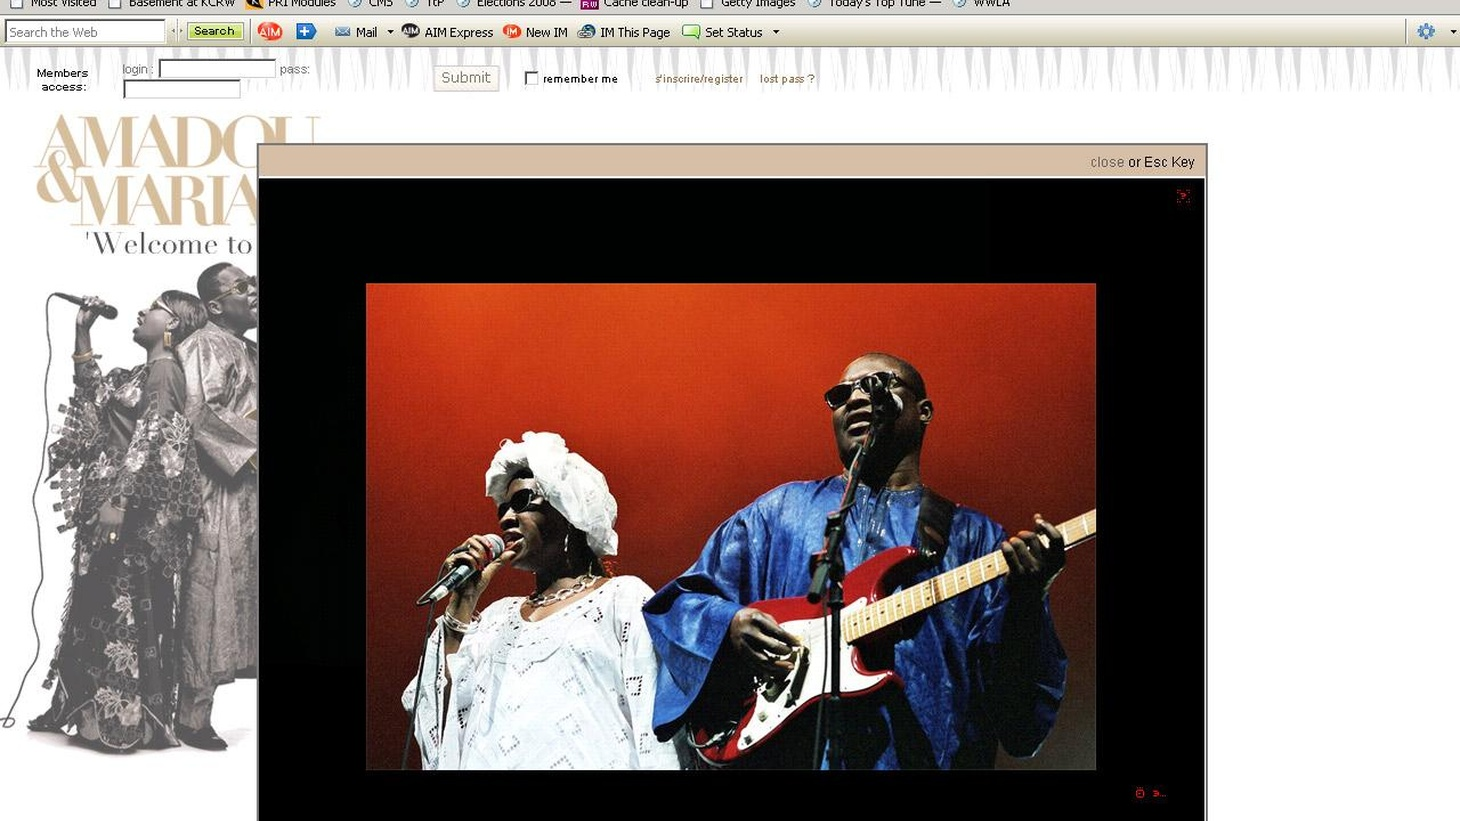 Amadou & Mariam are a blind husband and wife duo from Mali. Today's Top Tune is a rare treat that is not available on CD..